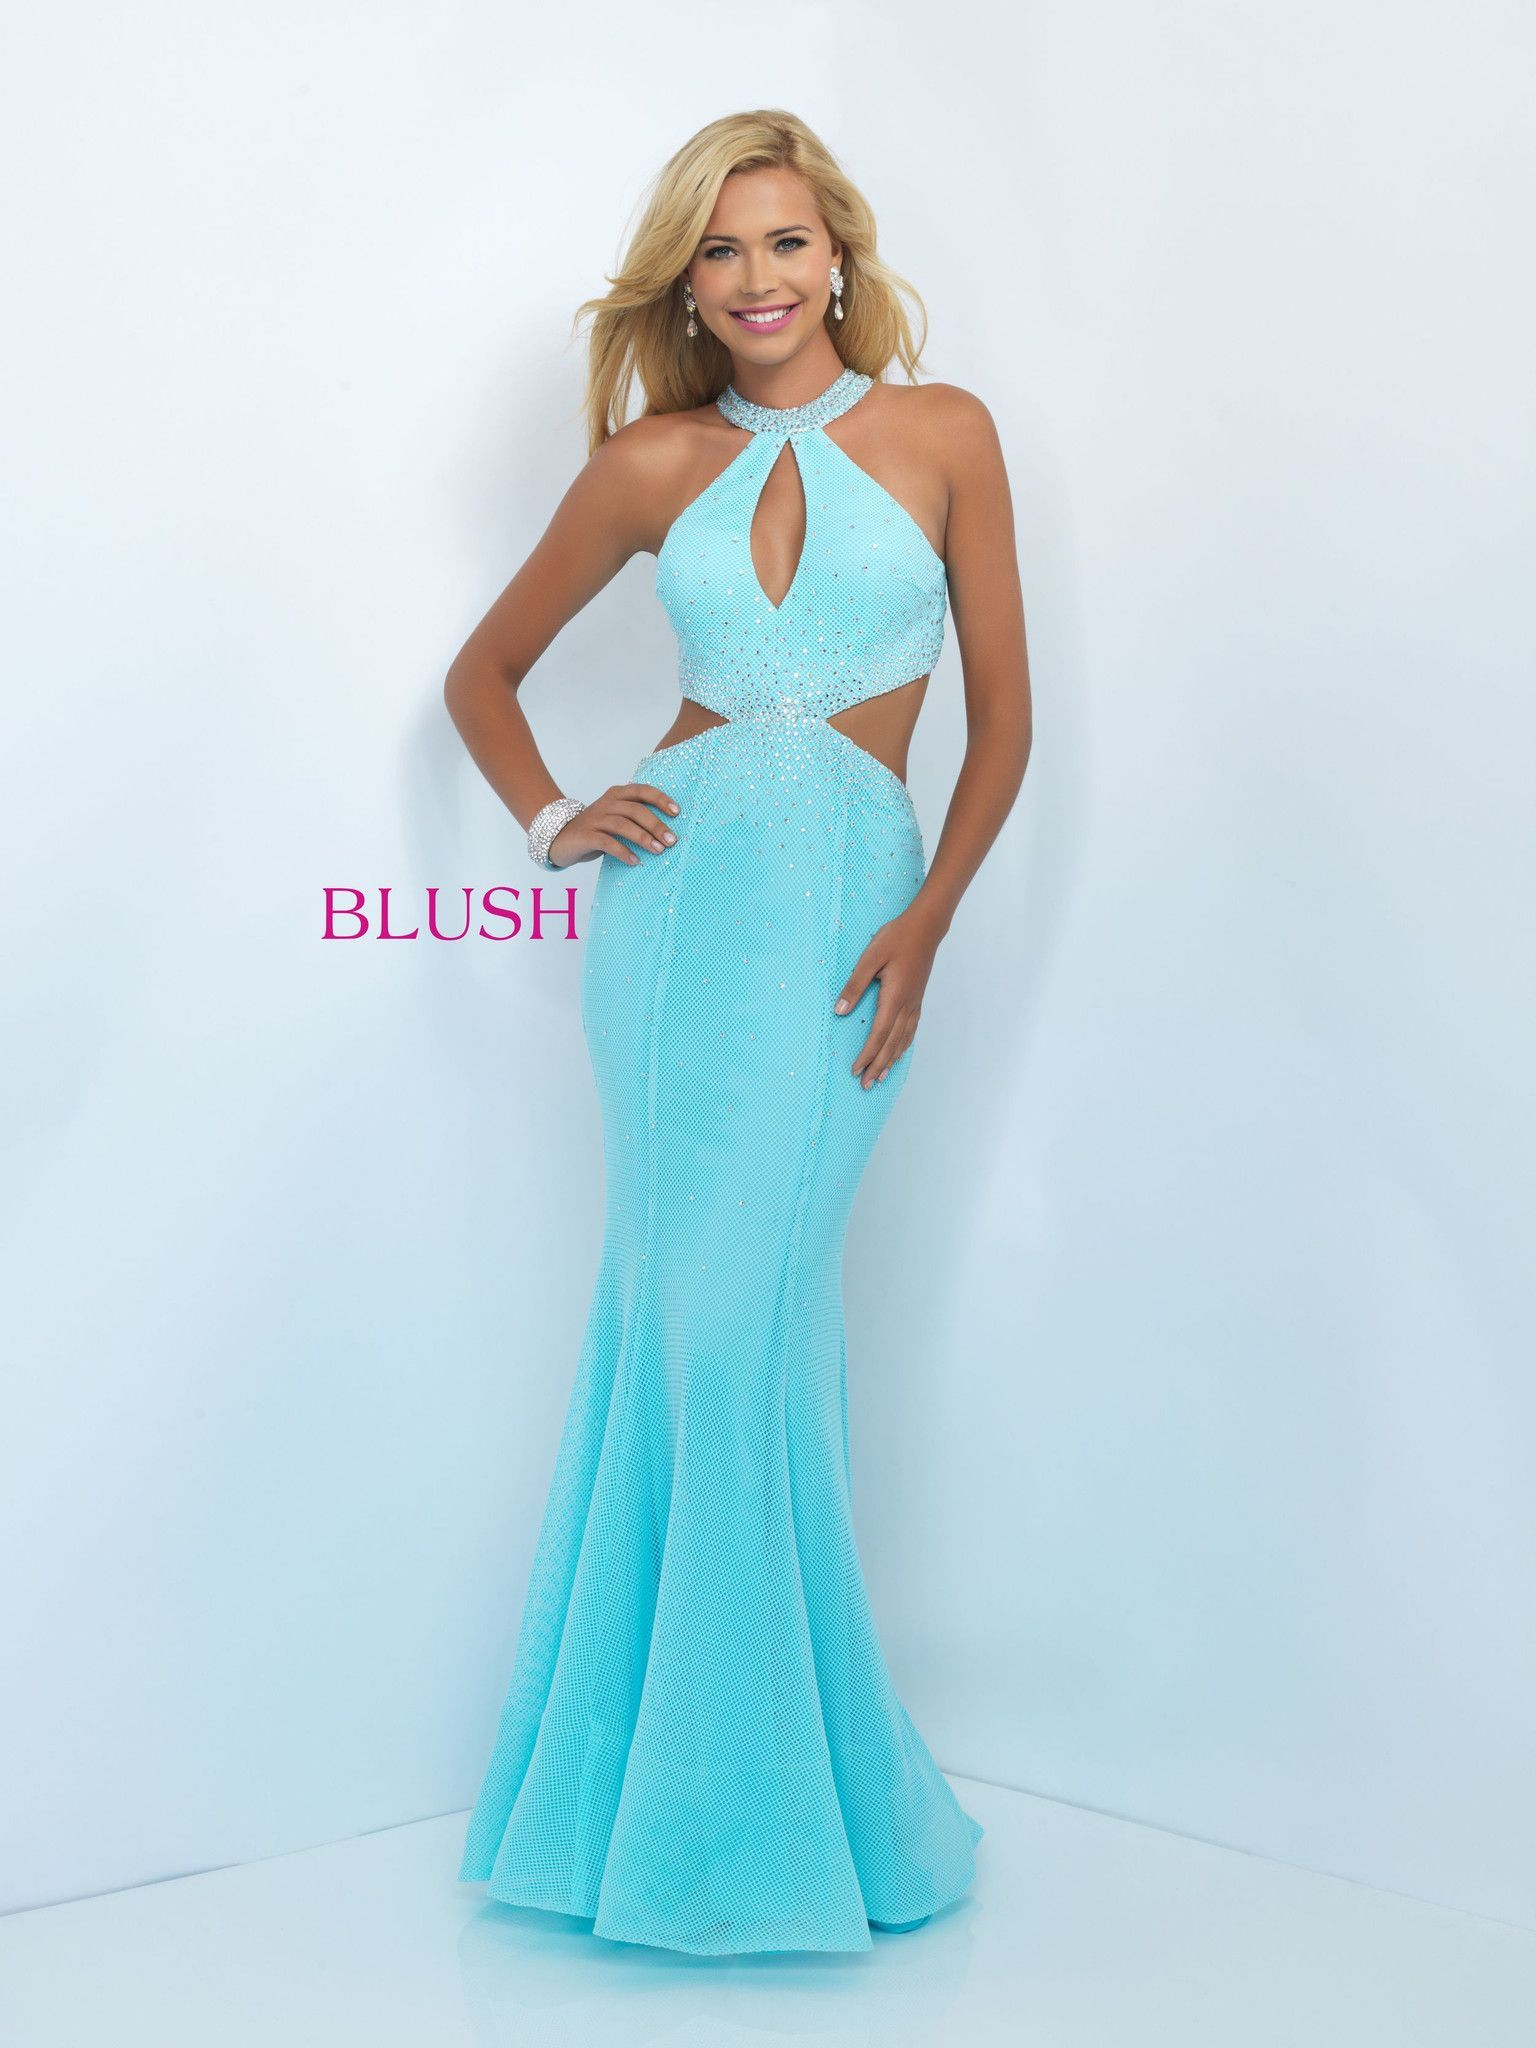 Blush Prom 11034 Sky | Products | Pinterest | Blush prom, Prom and ...